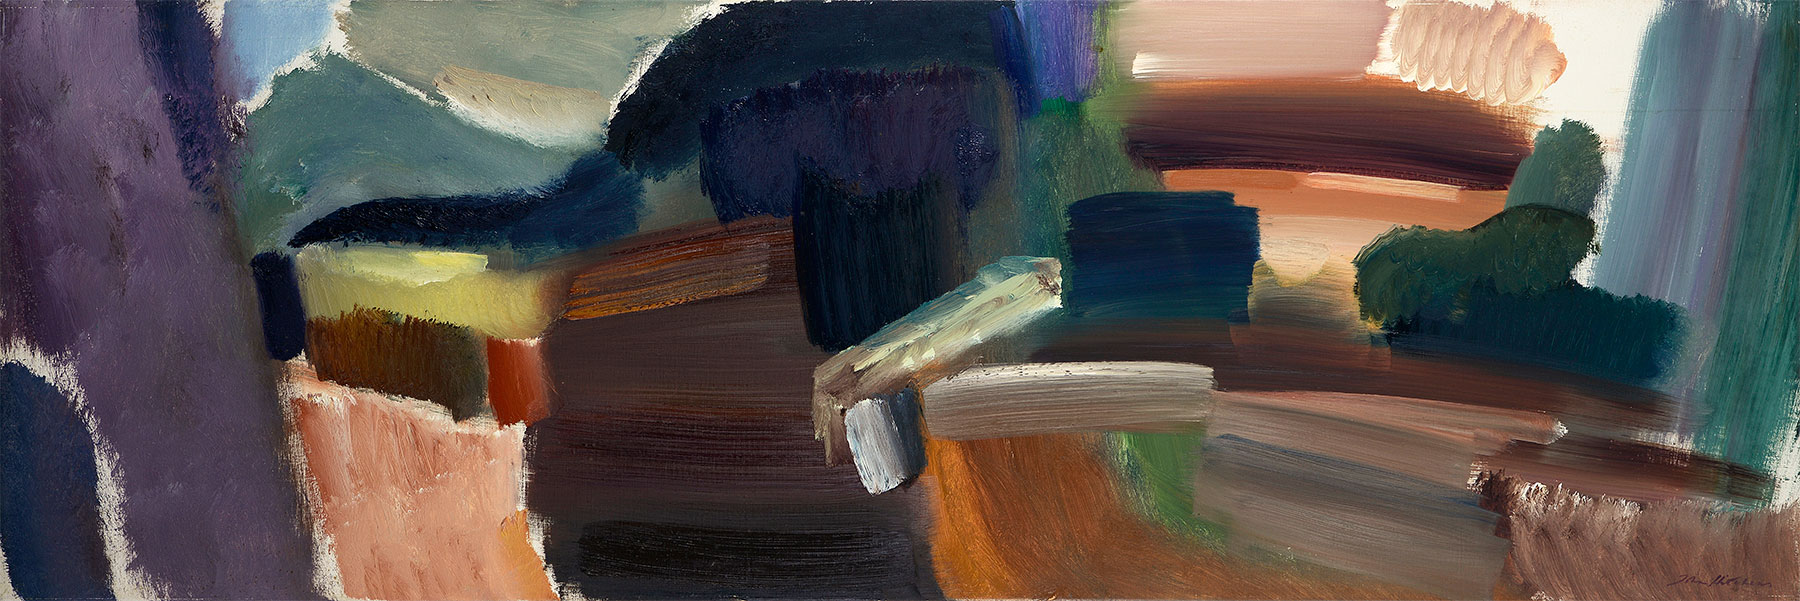 October Earth, 1977, 51 x 152 cm, oil on canvas